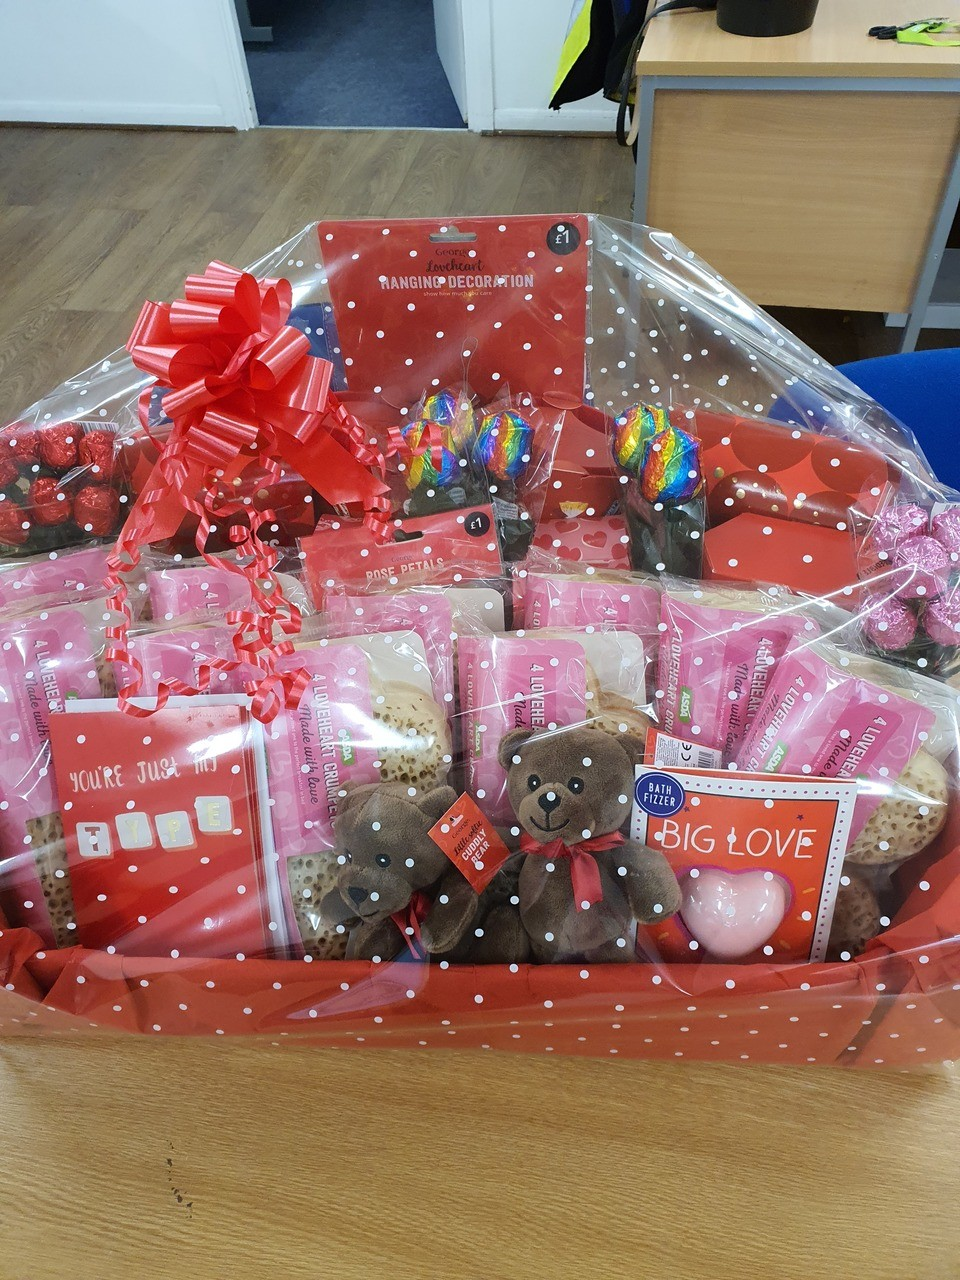 Valentine's is here at Fosse Park | Asda Leicester